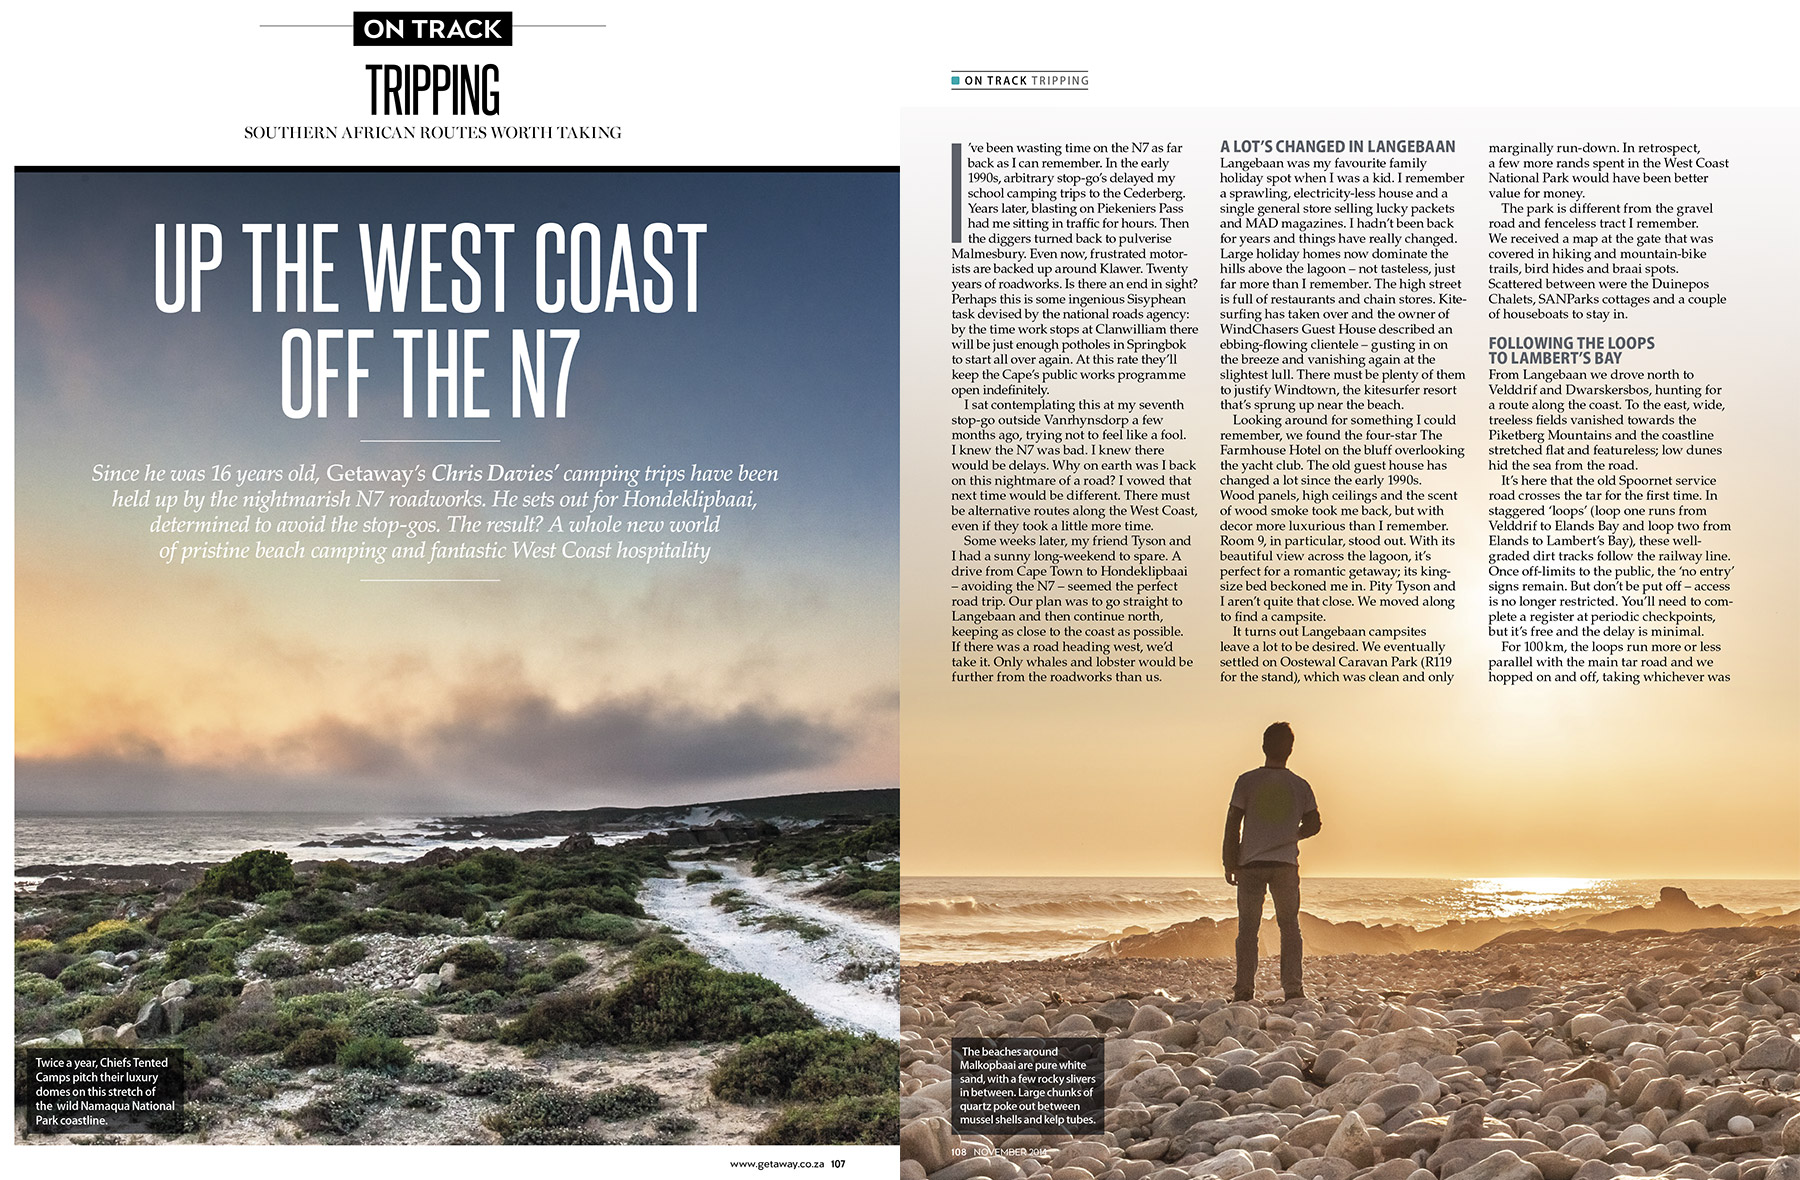 Getaway Magazine - A beach-camping road trip along South Africa's gorgeous West Coast.